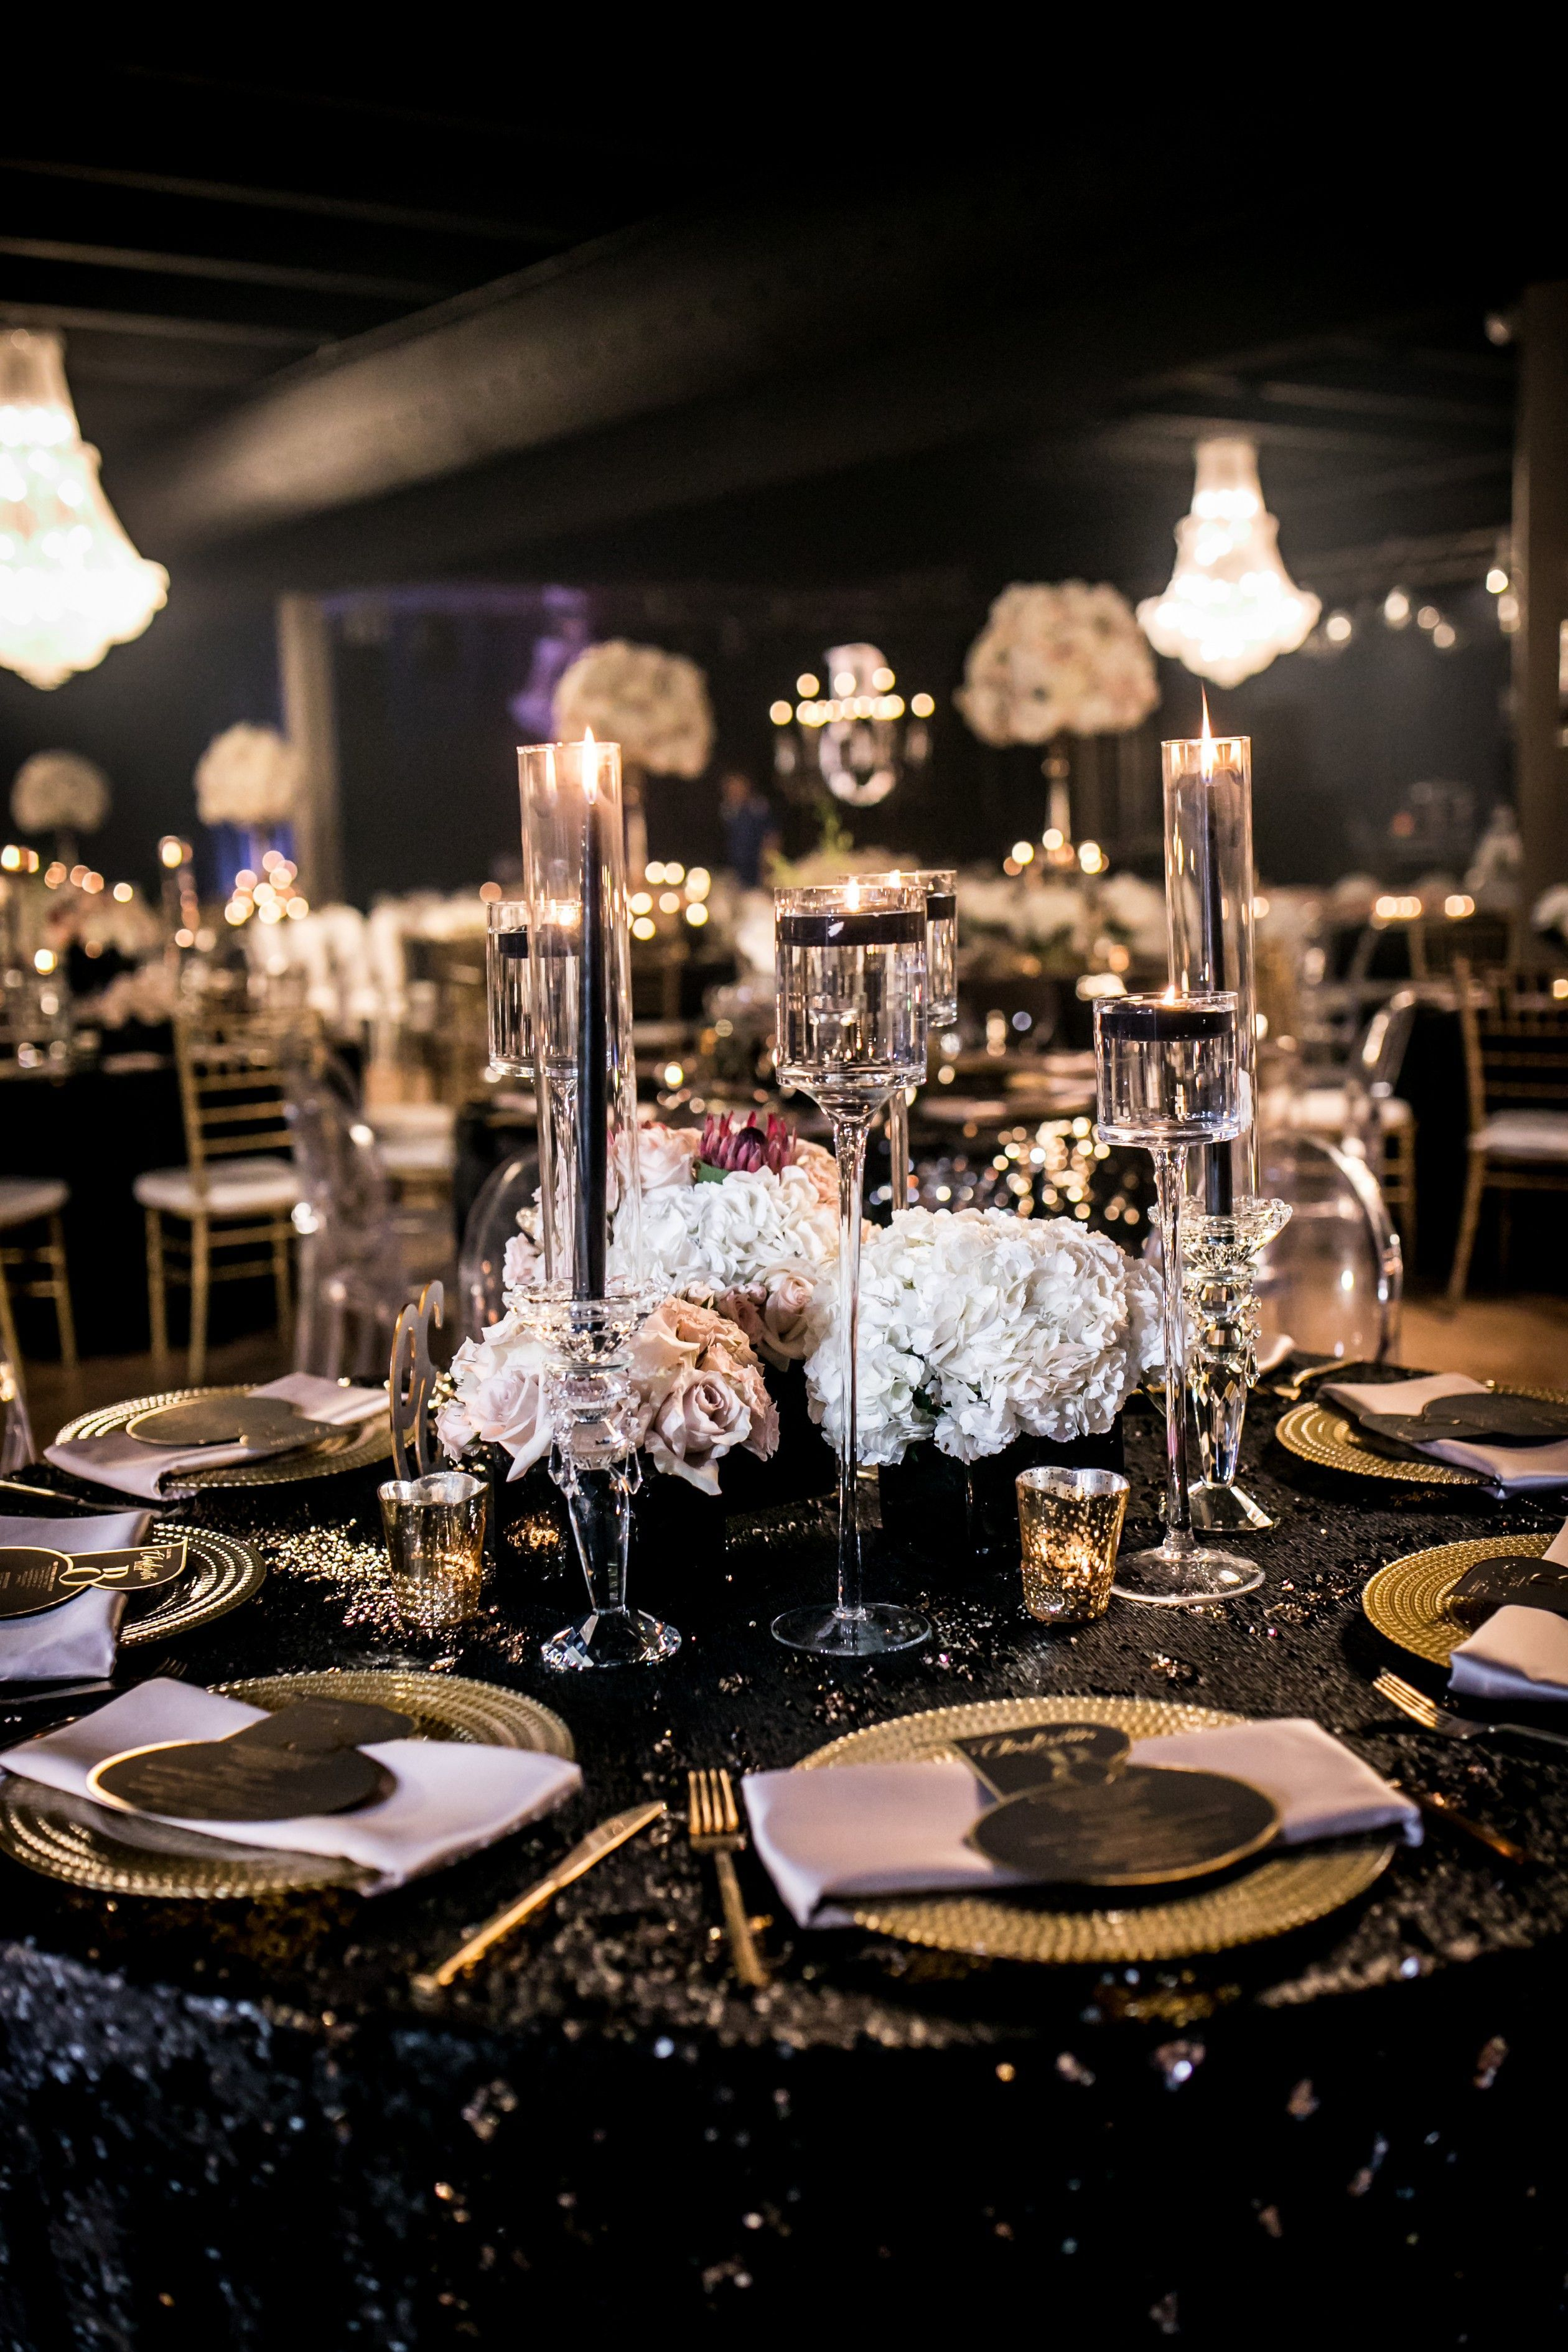 This luxe birthday party design has a classy 70s theme